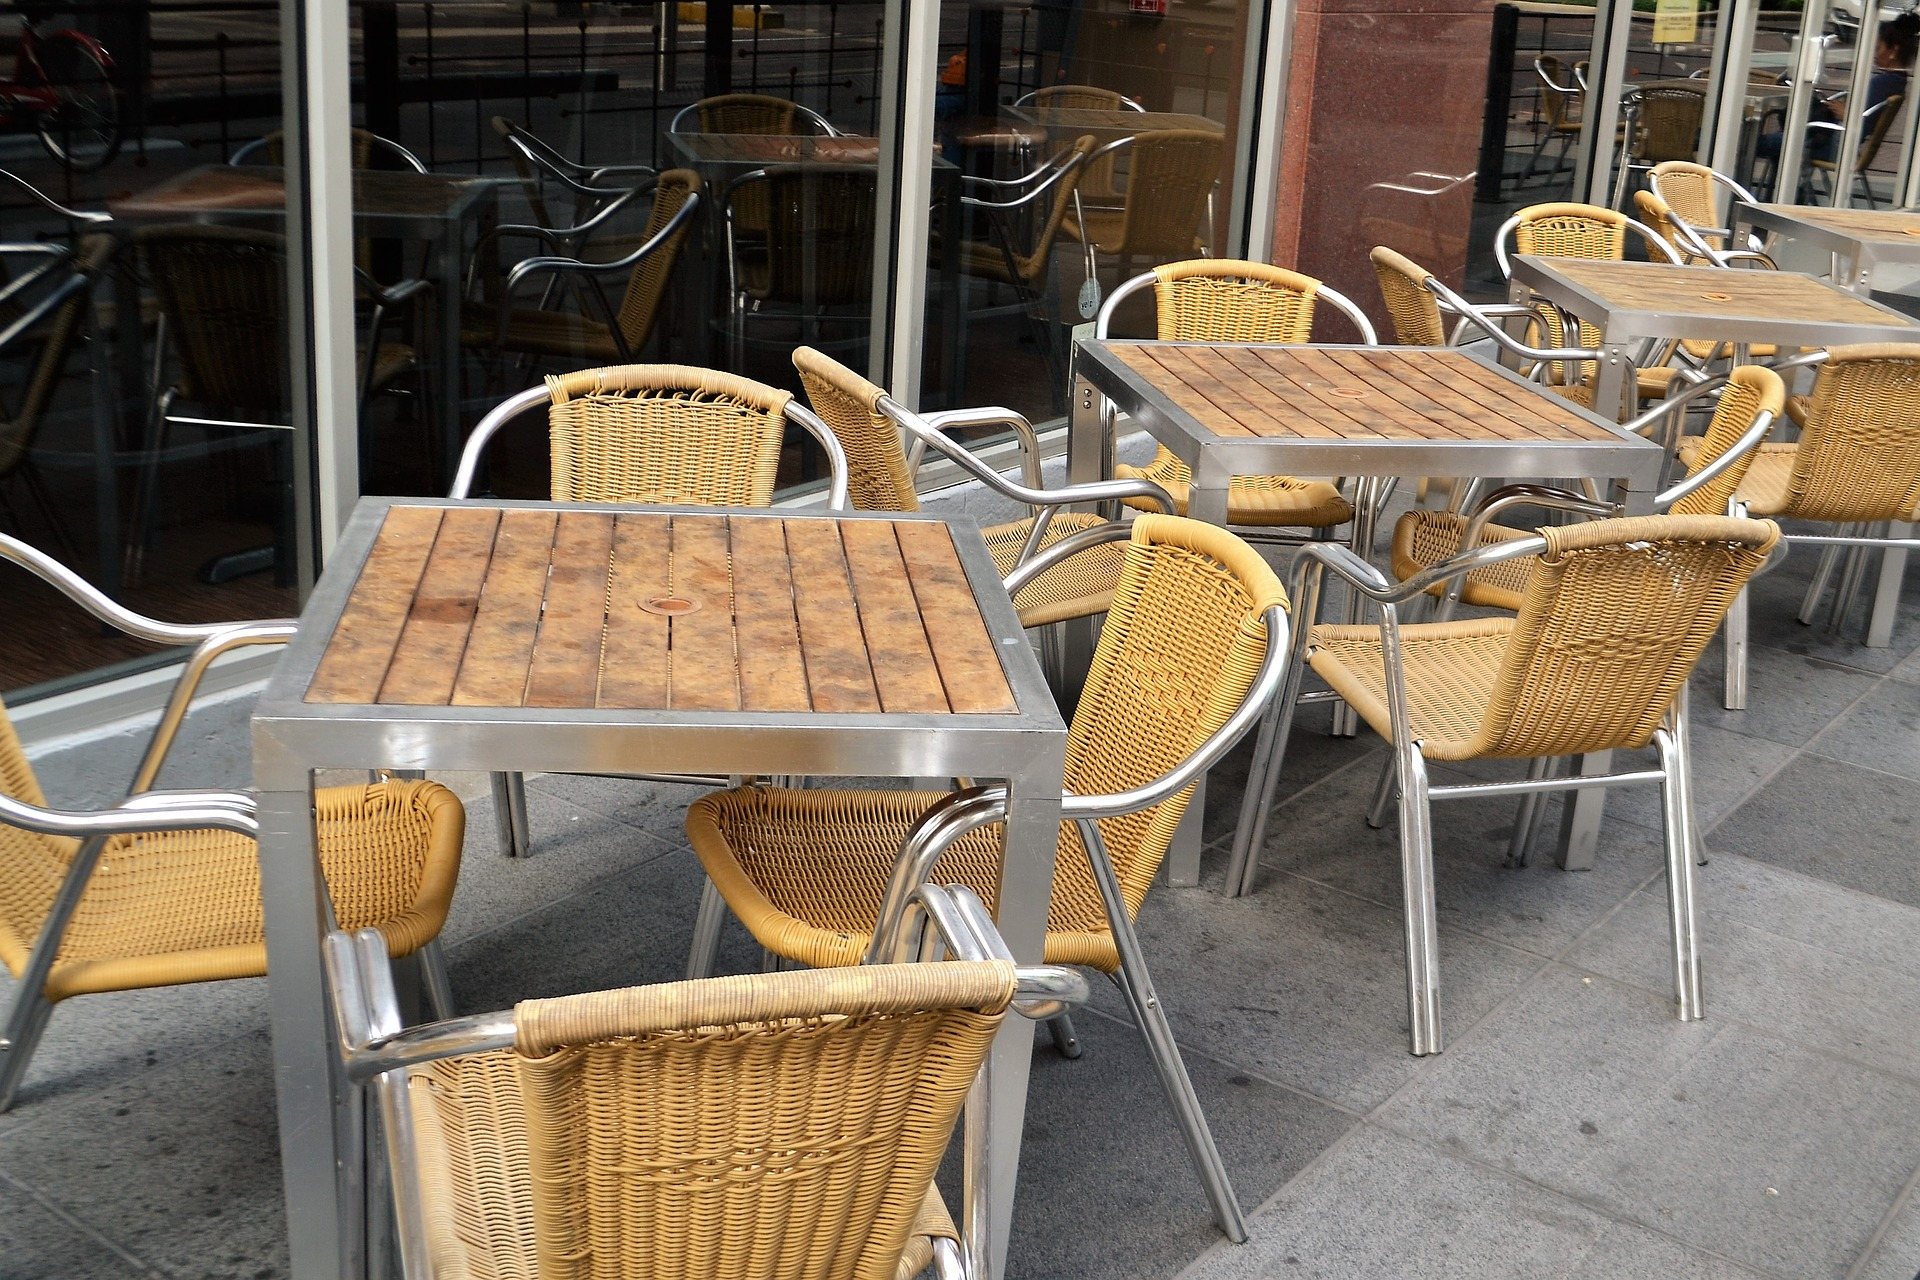 Empty restaurant tables and chairs on a sidewalk